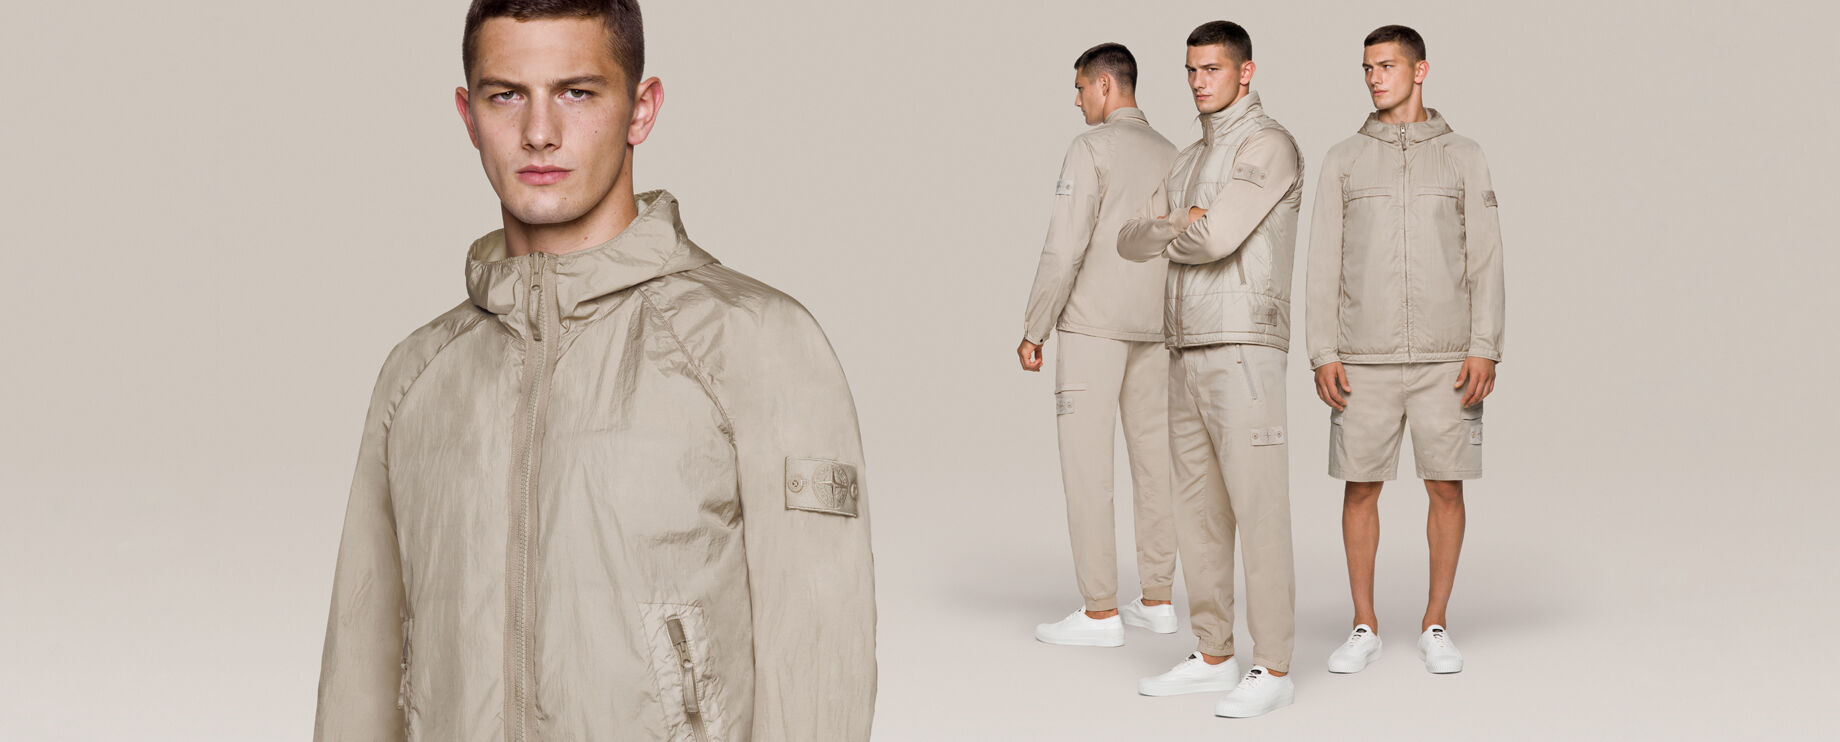 Four shots of the same model wearing monochromatic beige outfits with different styles of cargo pants, shorts and jackets, all with the Stone Island ghost badge.